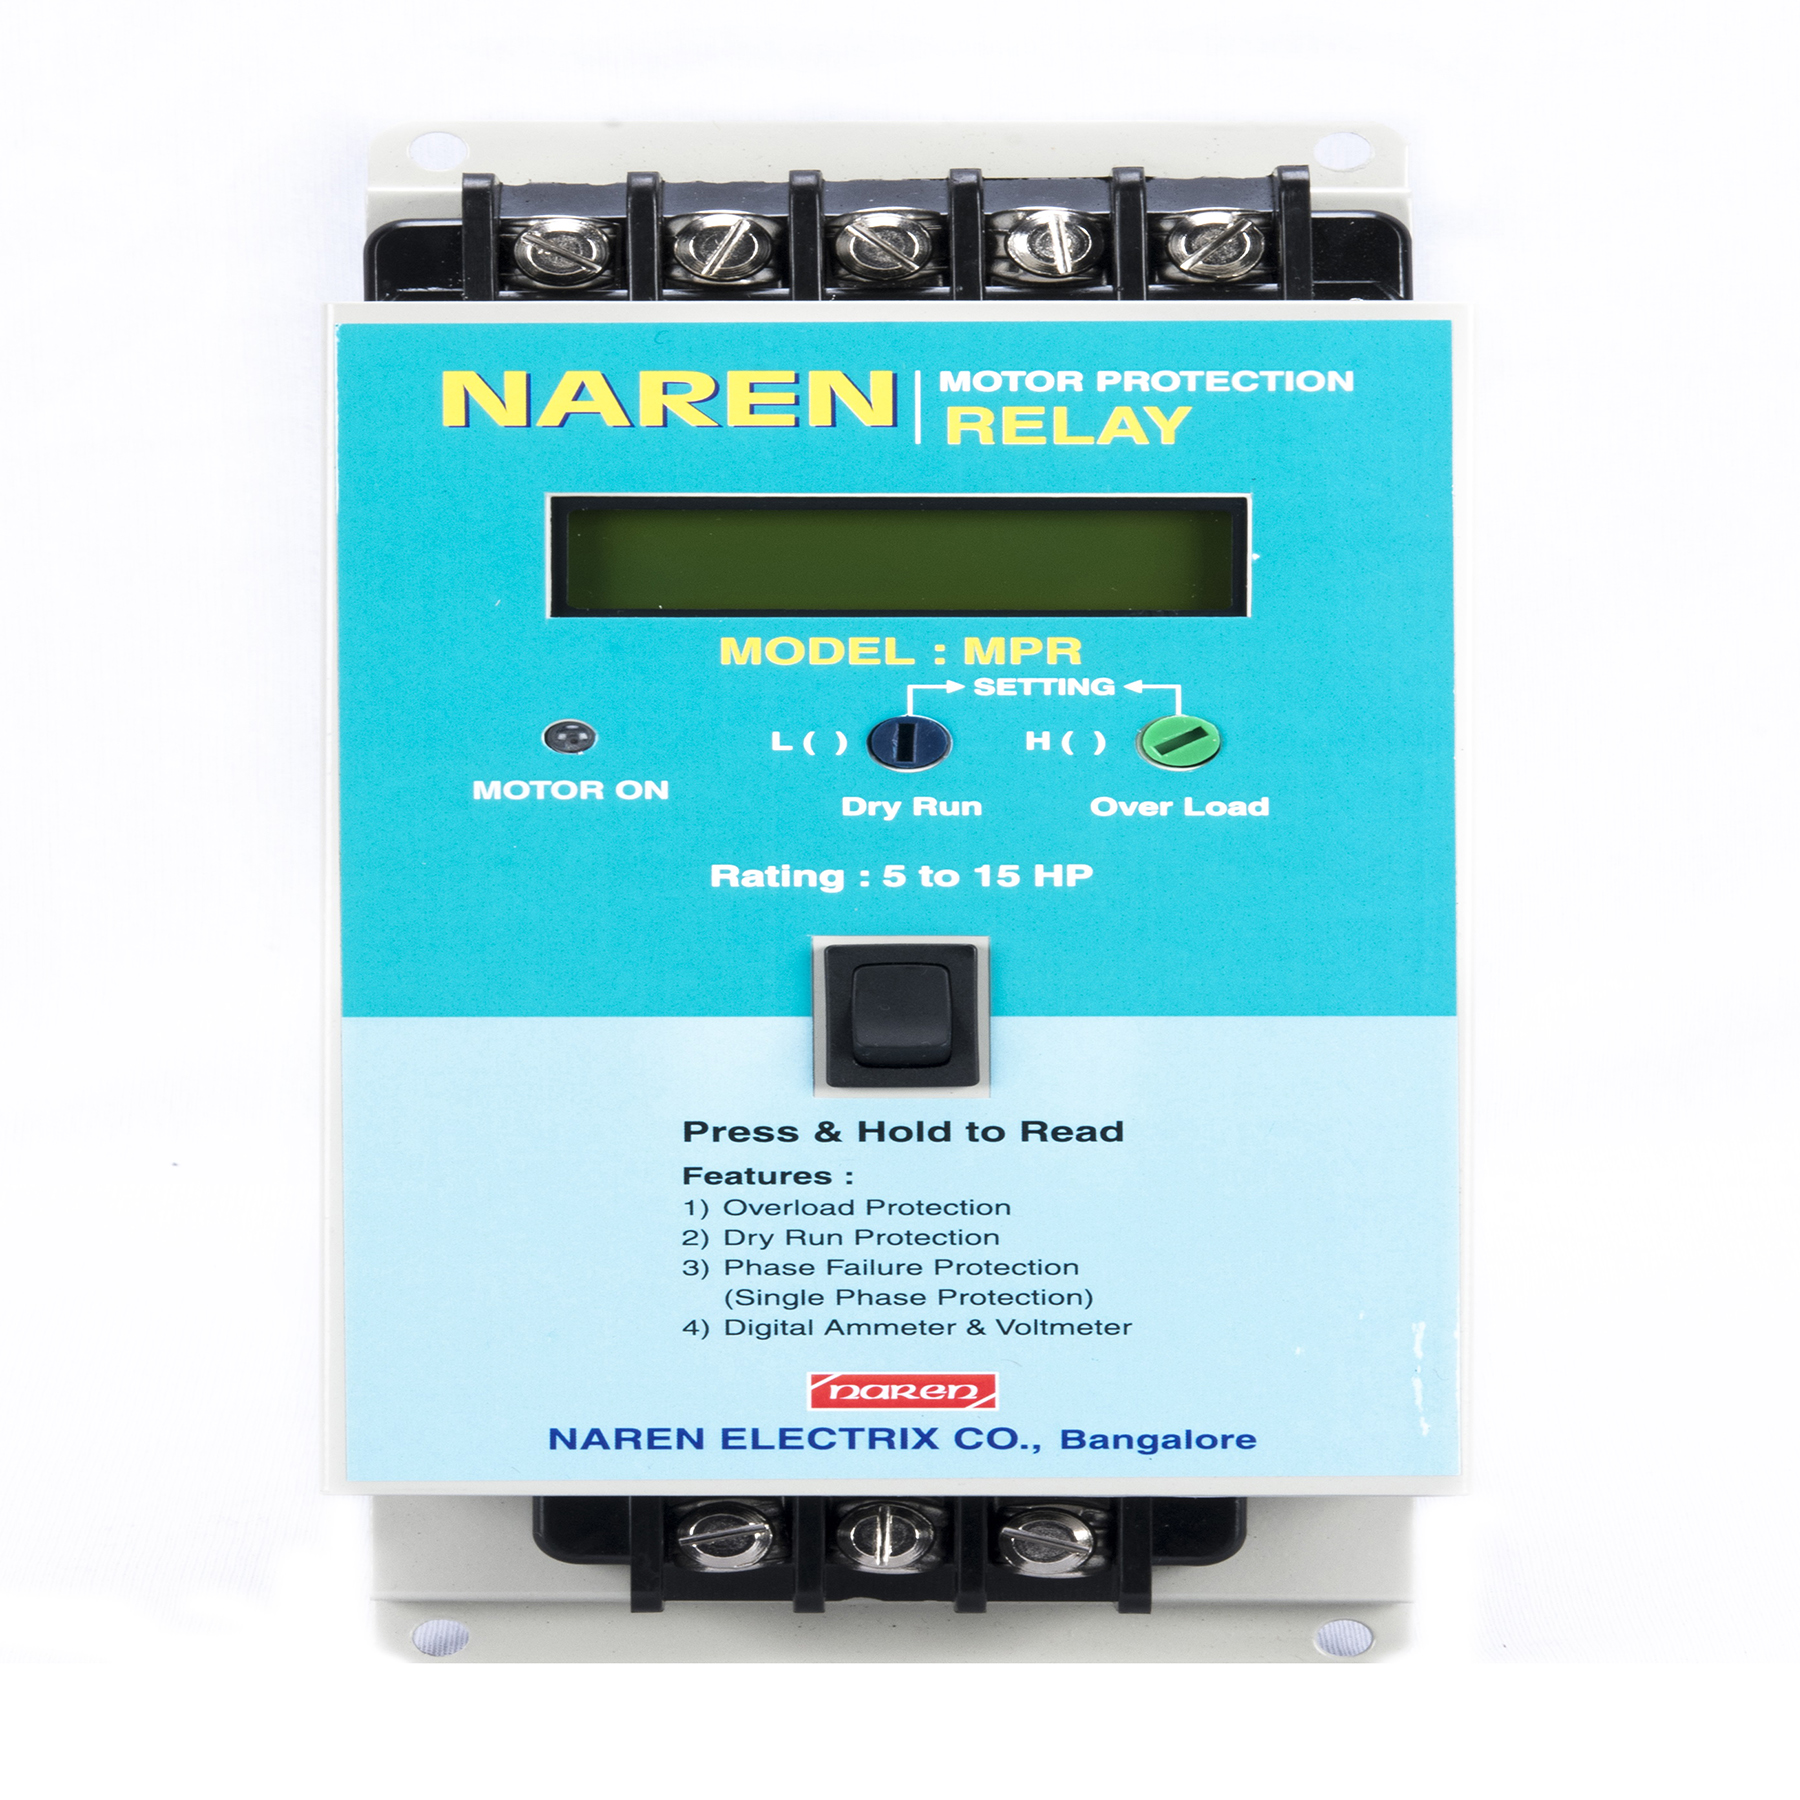 Naren Electrix - High Quality Motor Protection Relay